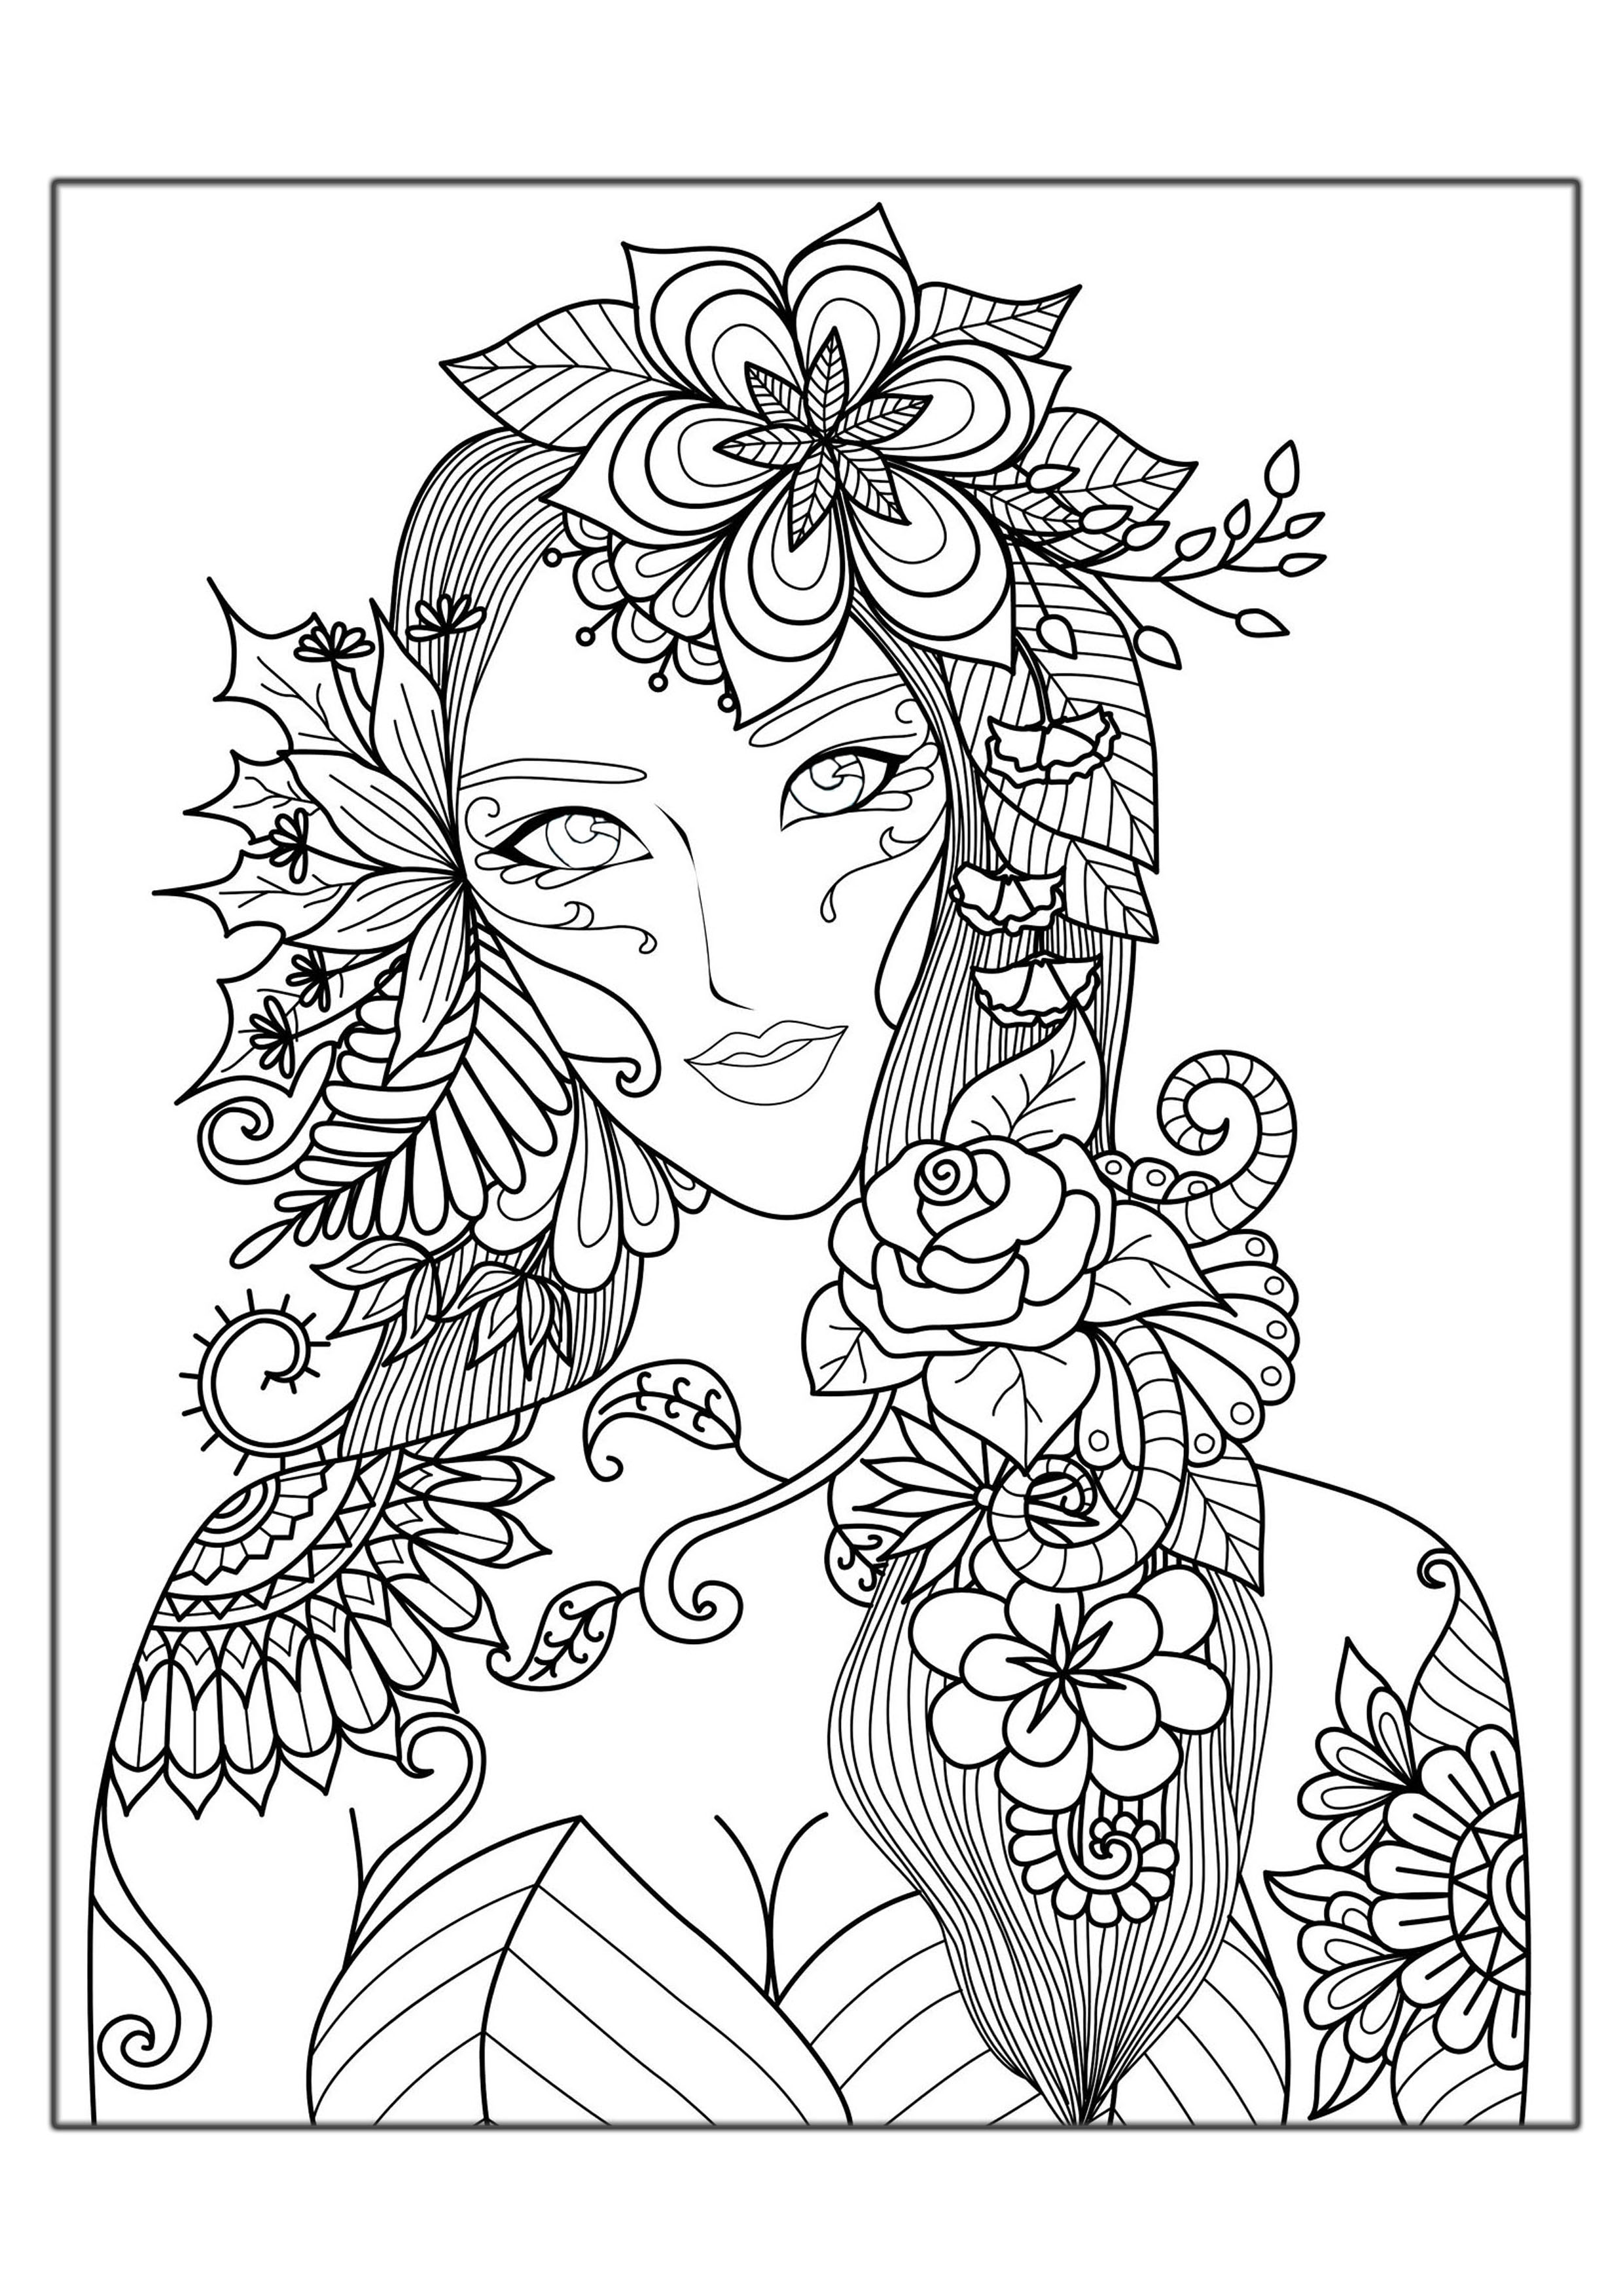 intricate coloring pages for kids free coloring pages of difficult patterns coloring pages coloring intricate pages for kids